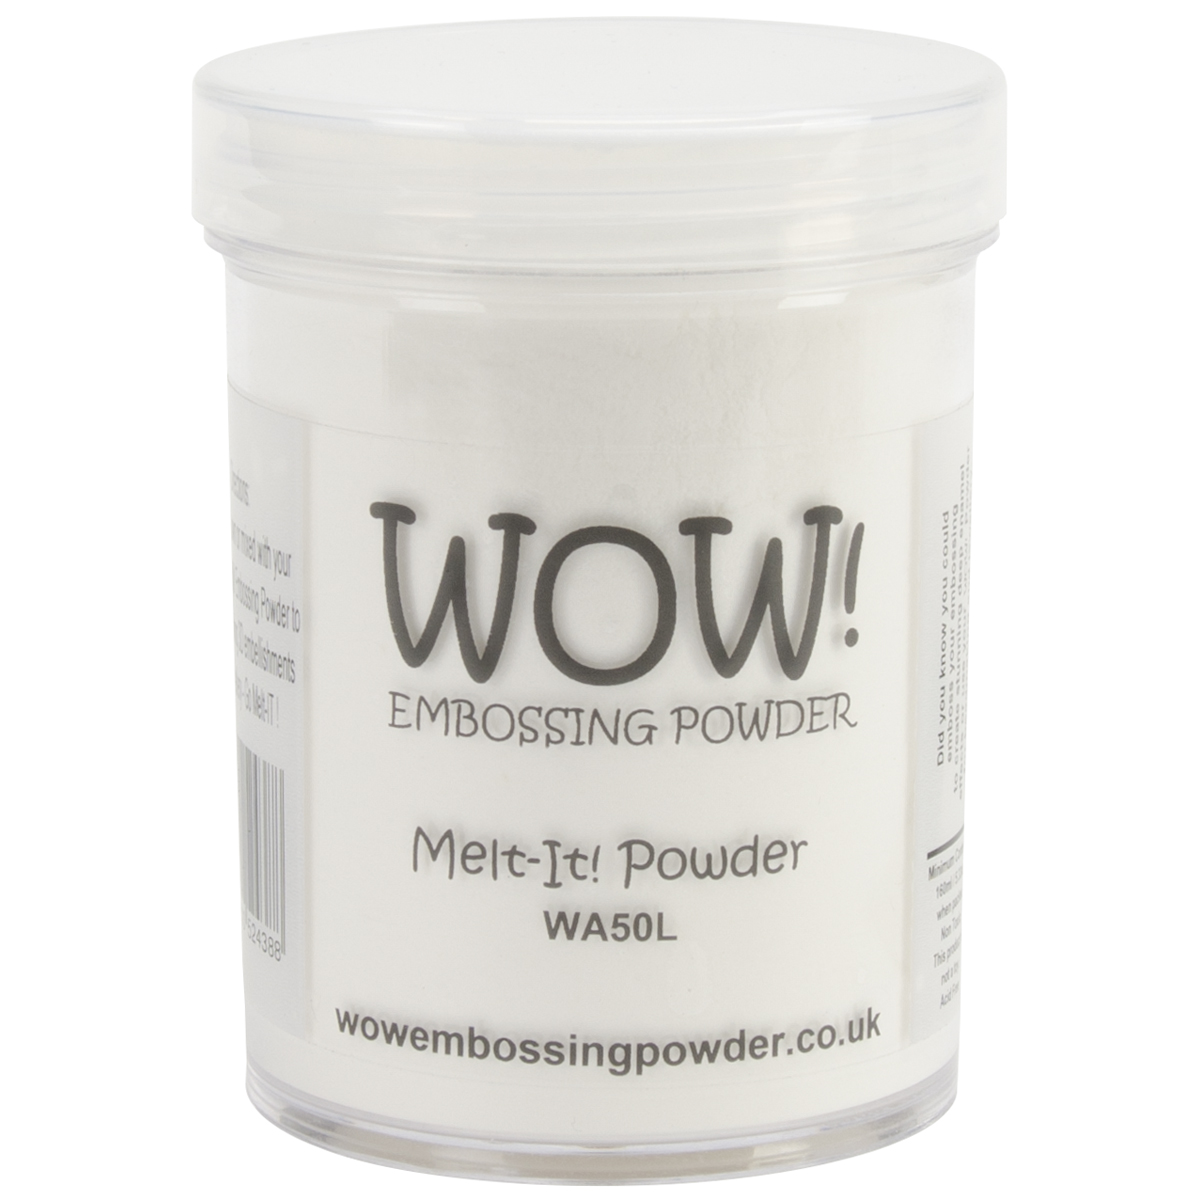 WOW! Embossing Powder Large Jar 160ml-Melt-It